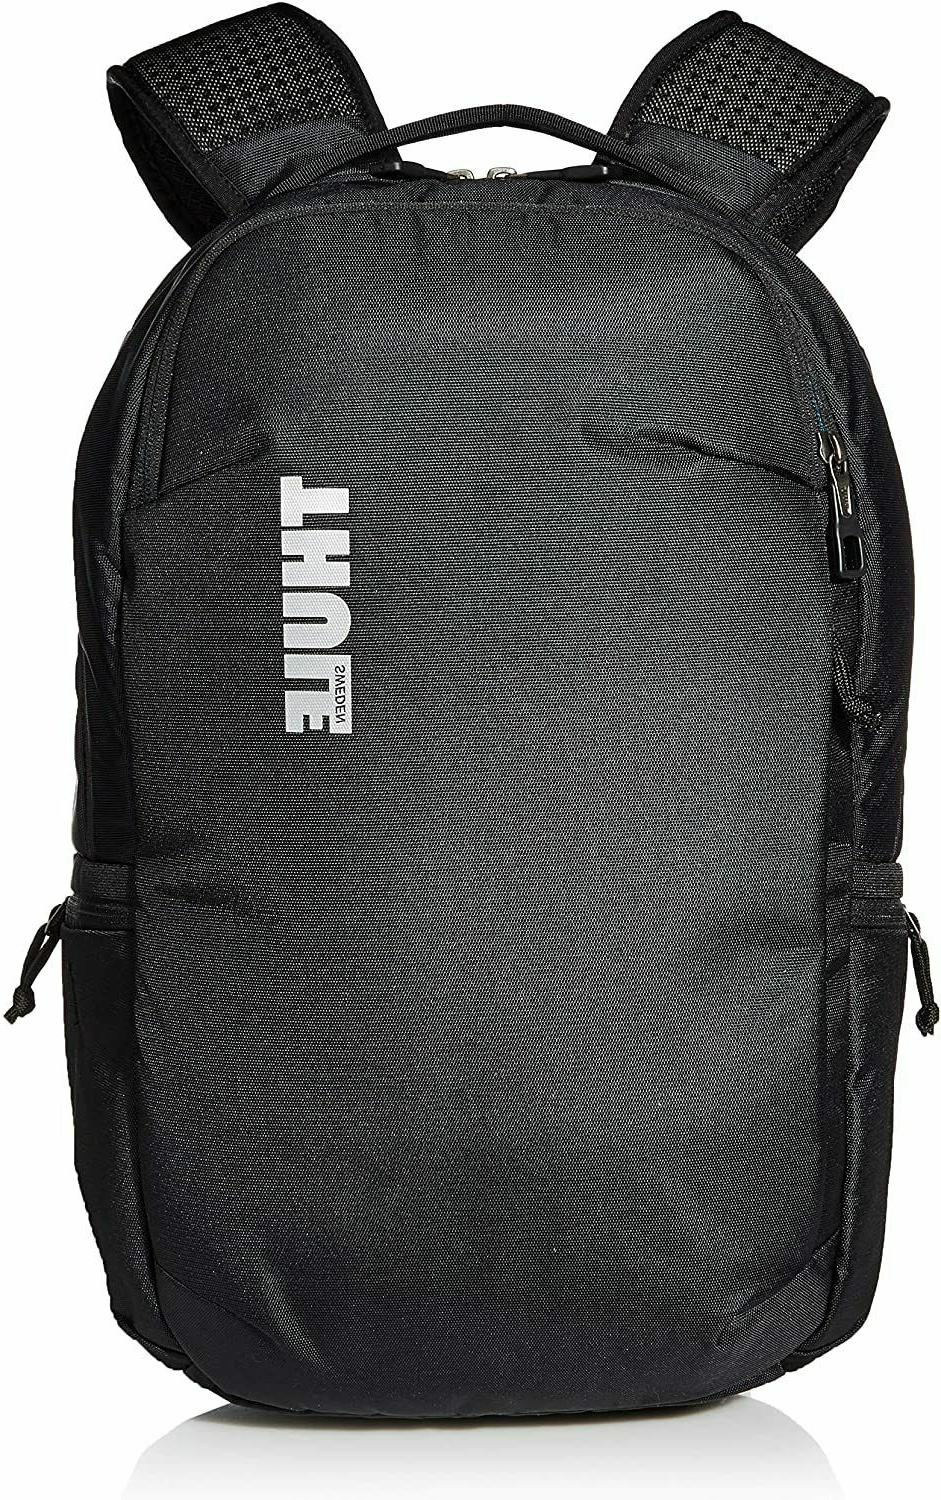 Thule Laptop Backpack Subterra Shadow NEW on